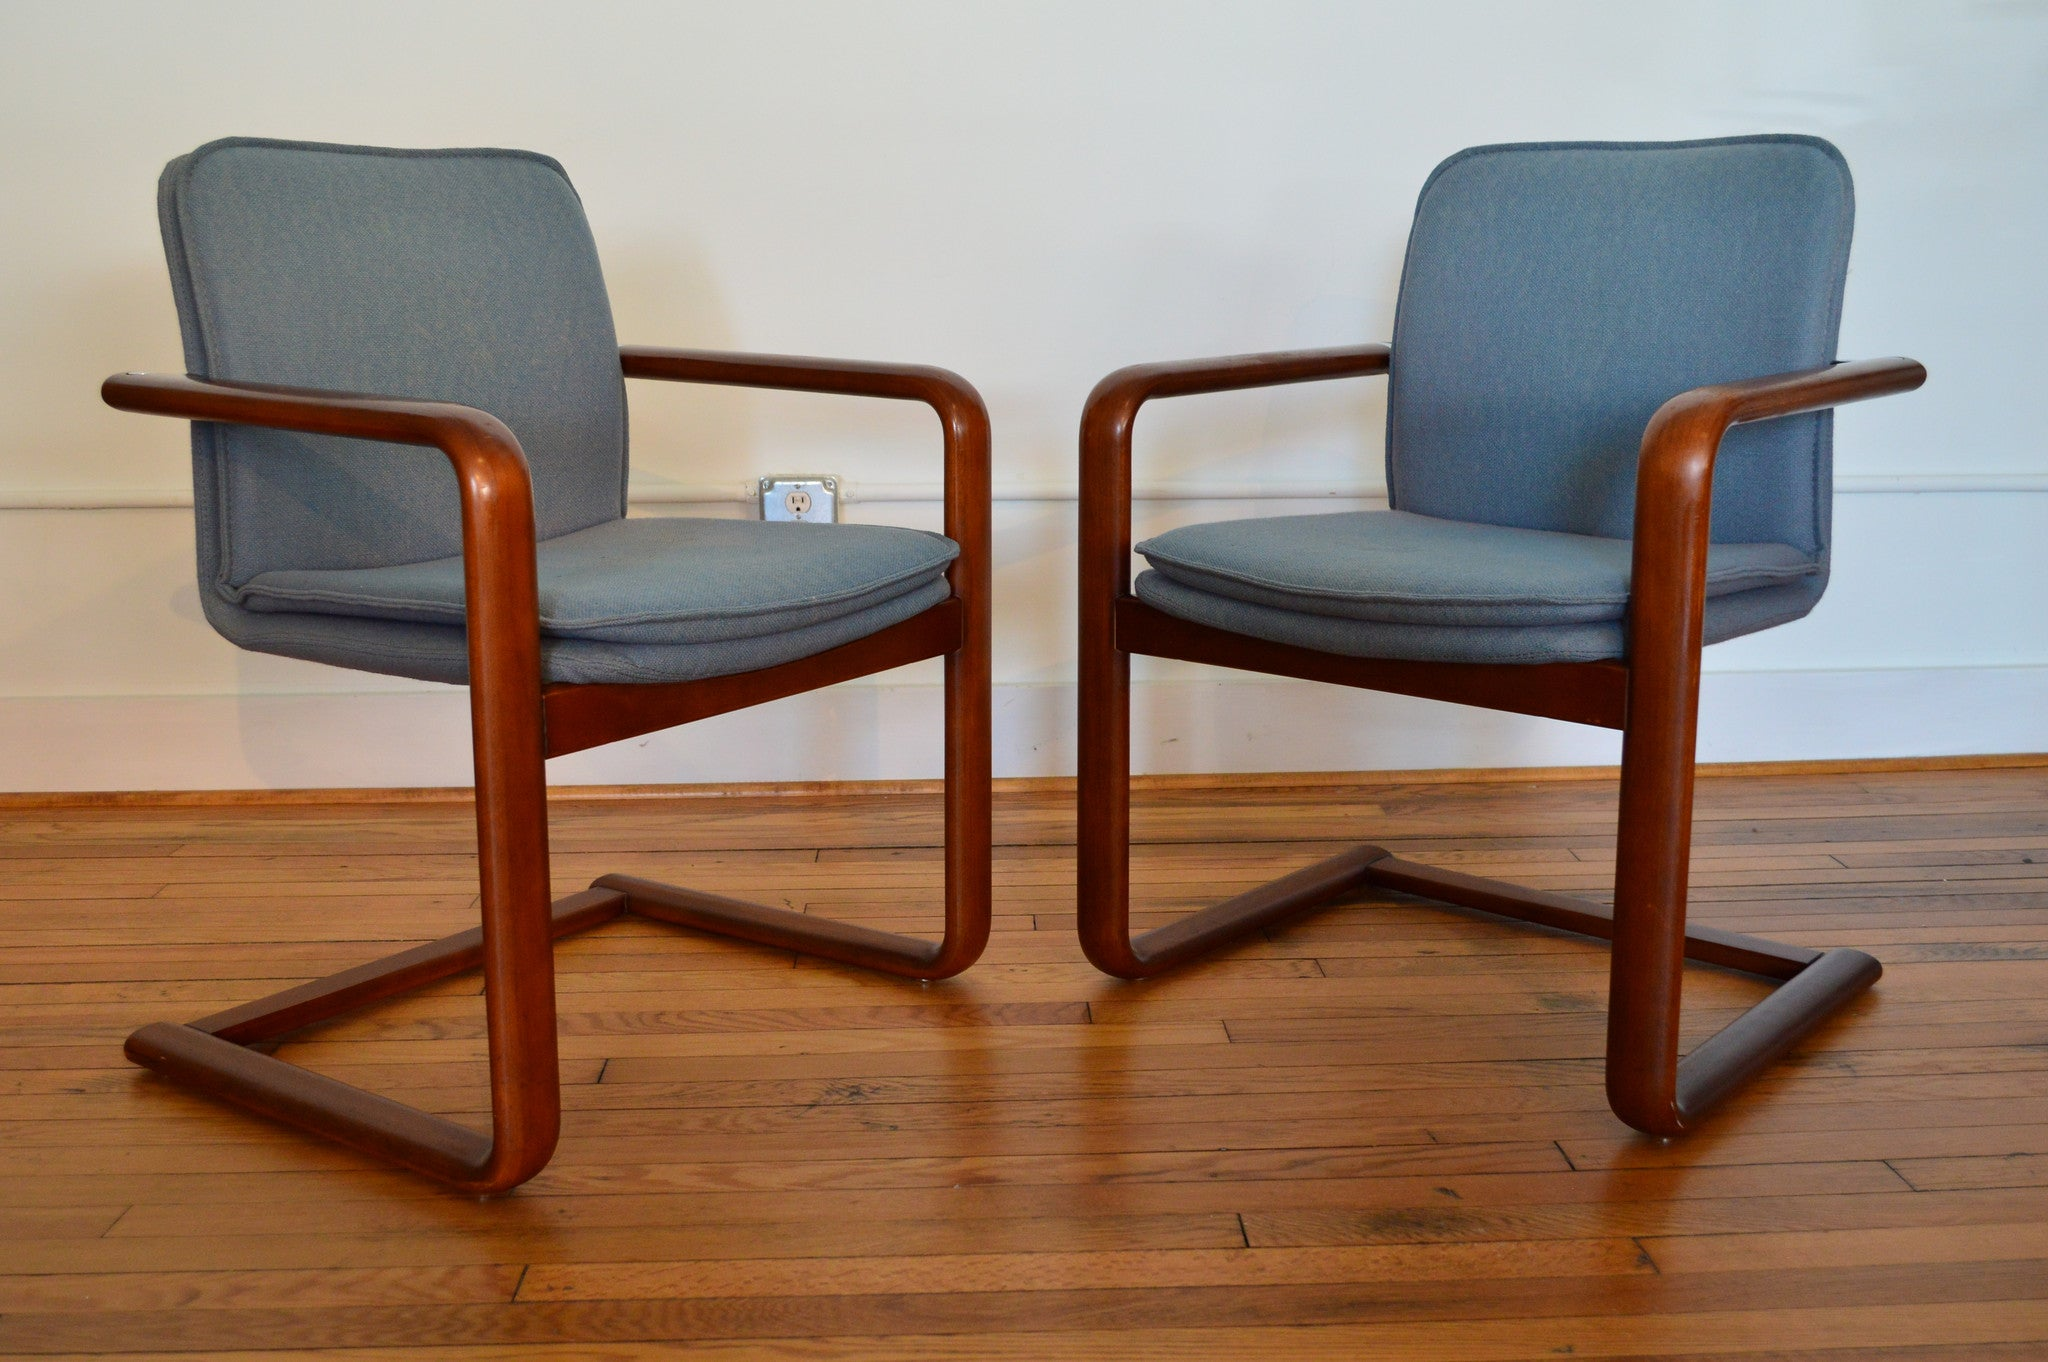 Pair Of Mid Century Cantilever Bentwood Chairs In Blue